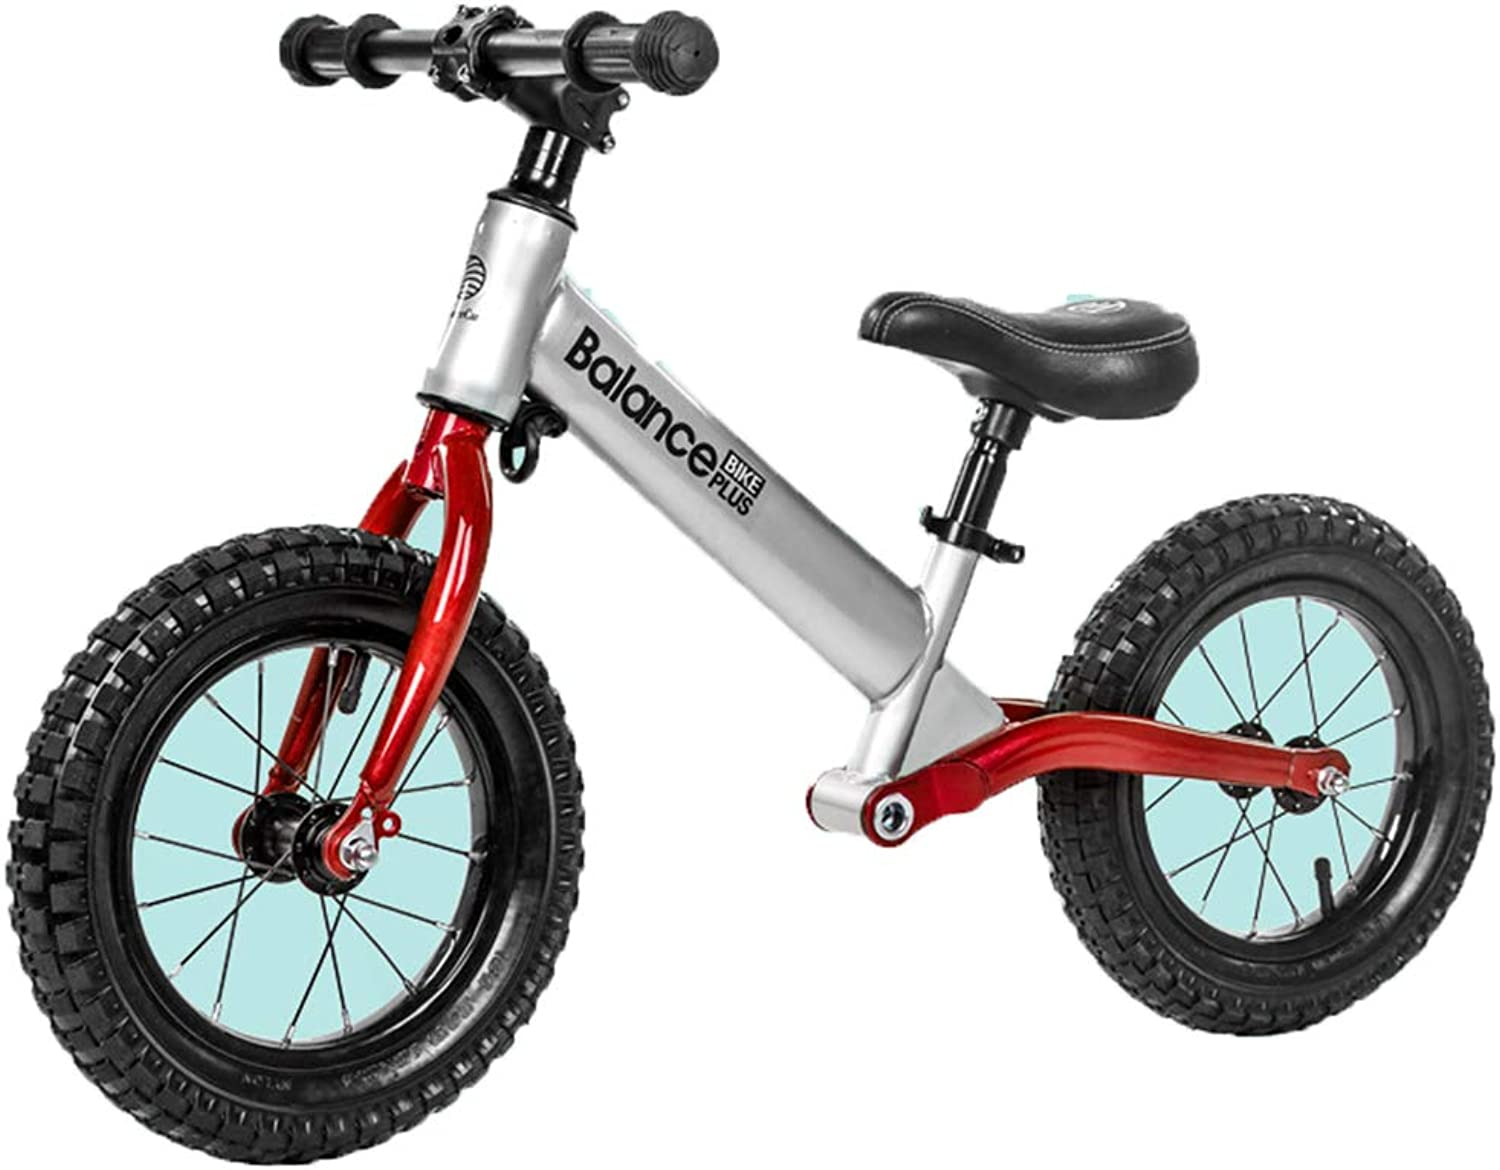 12 inch Lightweight Balance Bike for Kids', Big Kid NoPedal Training Bicycle, 4 5 6 7 8 Year Old Girl Boy Birthday Gift,B